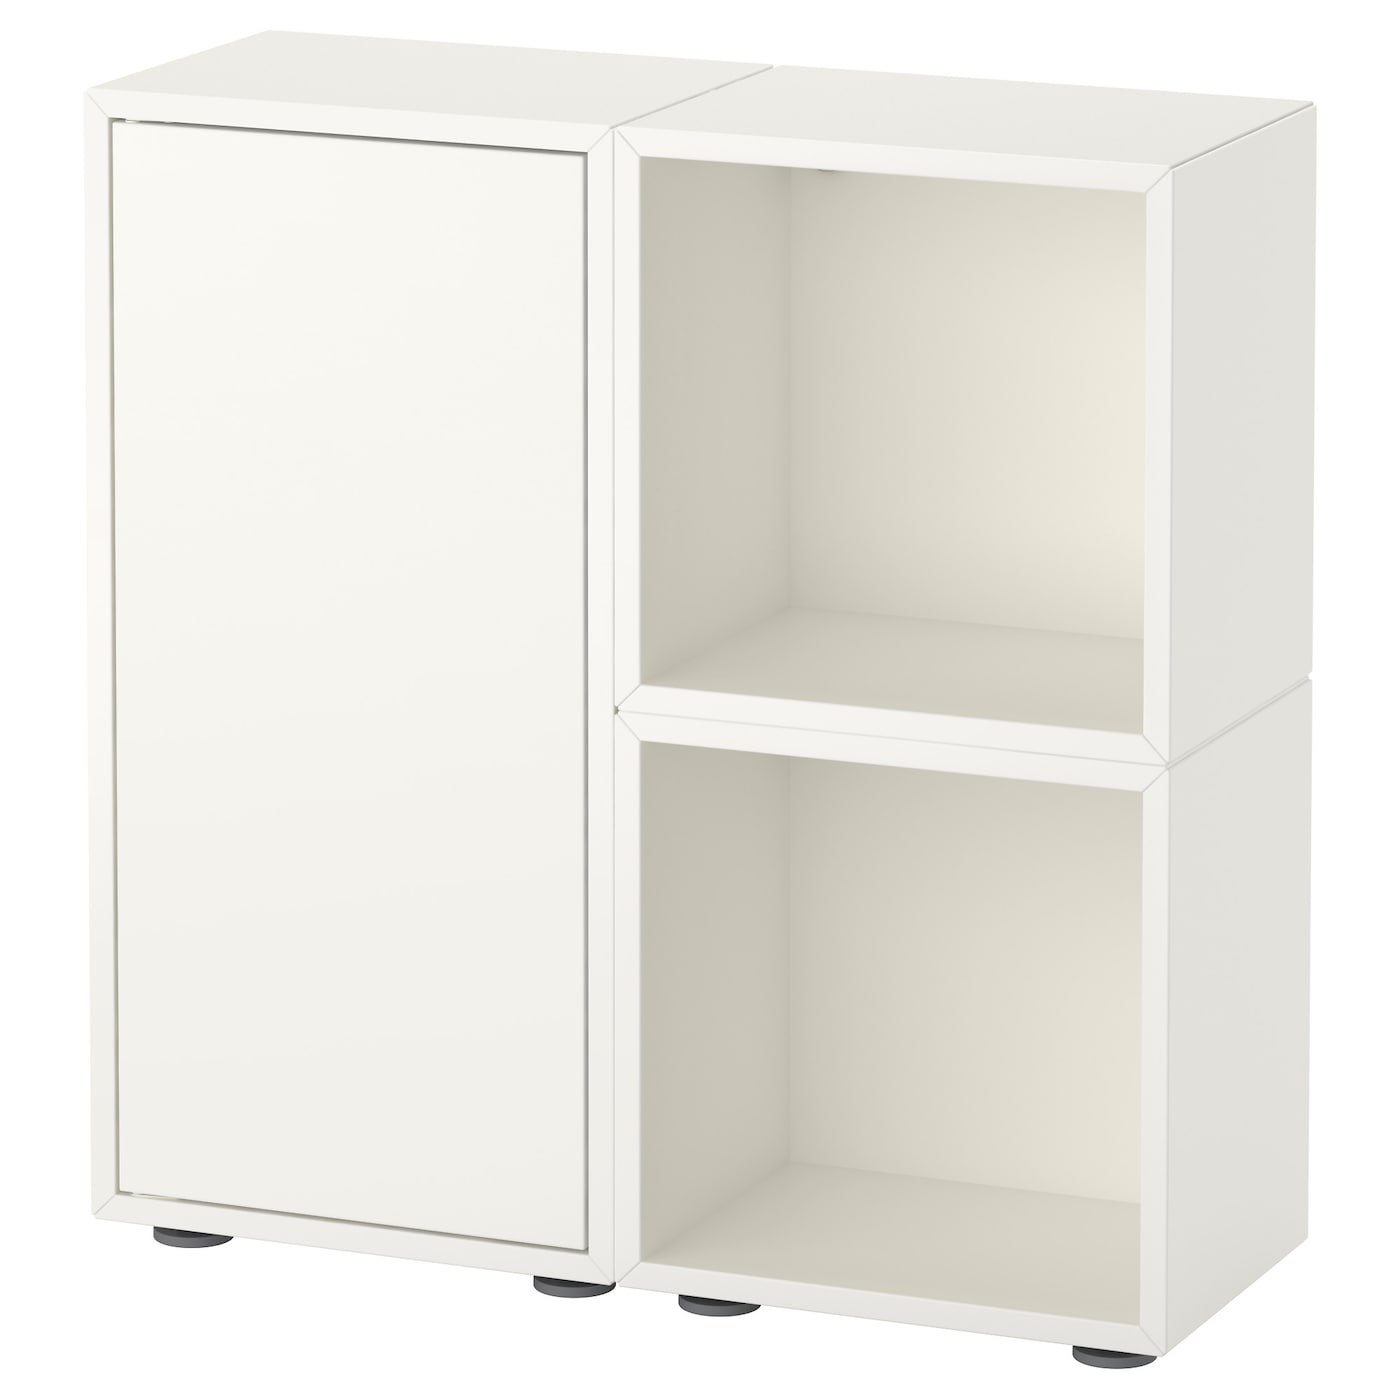 eket cabinet combination with feet white 70 x 25 x 72 cm ikea. Black Bedroom Furniture Sets. Home Design Ideas